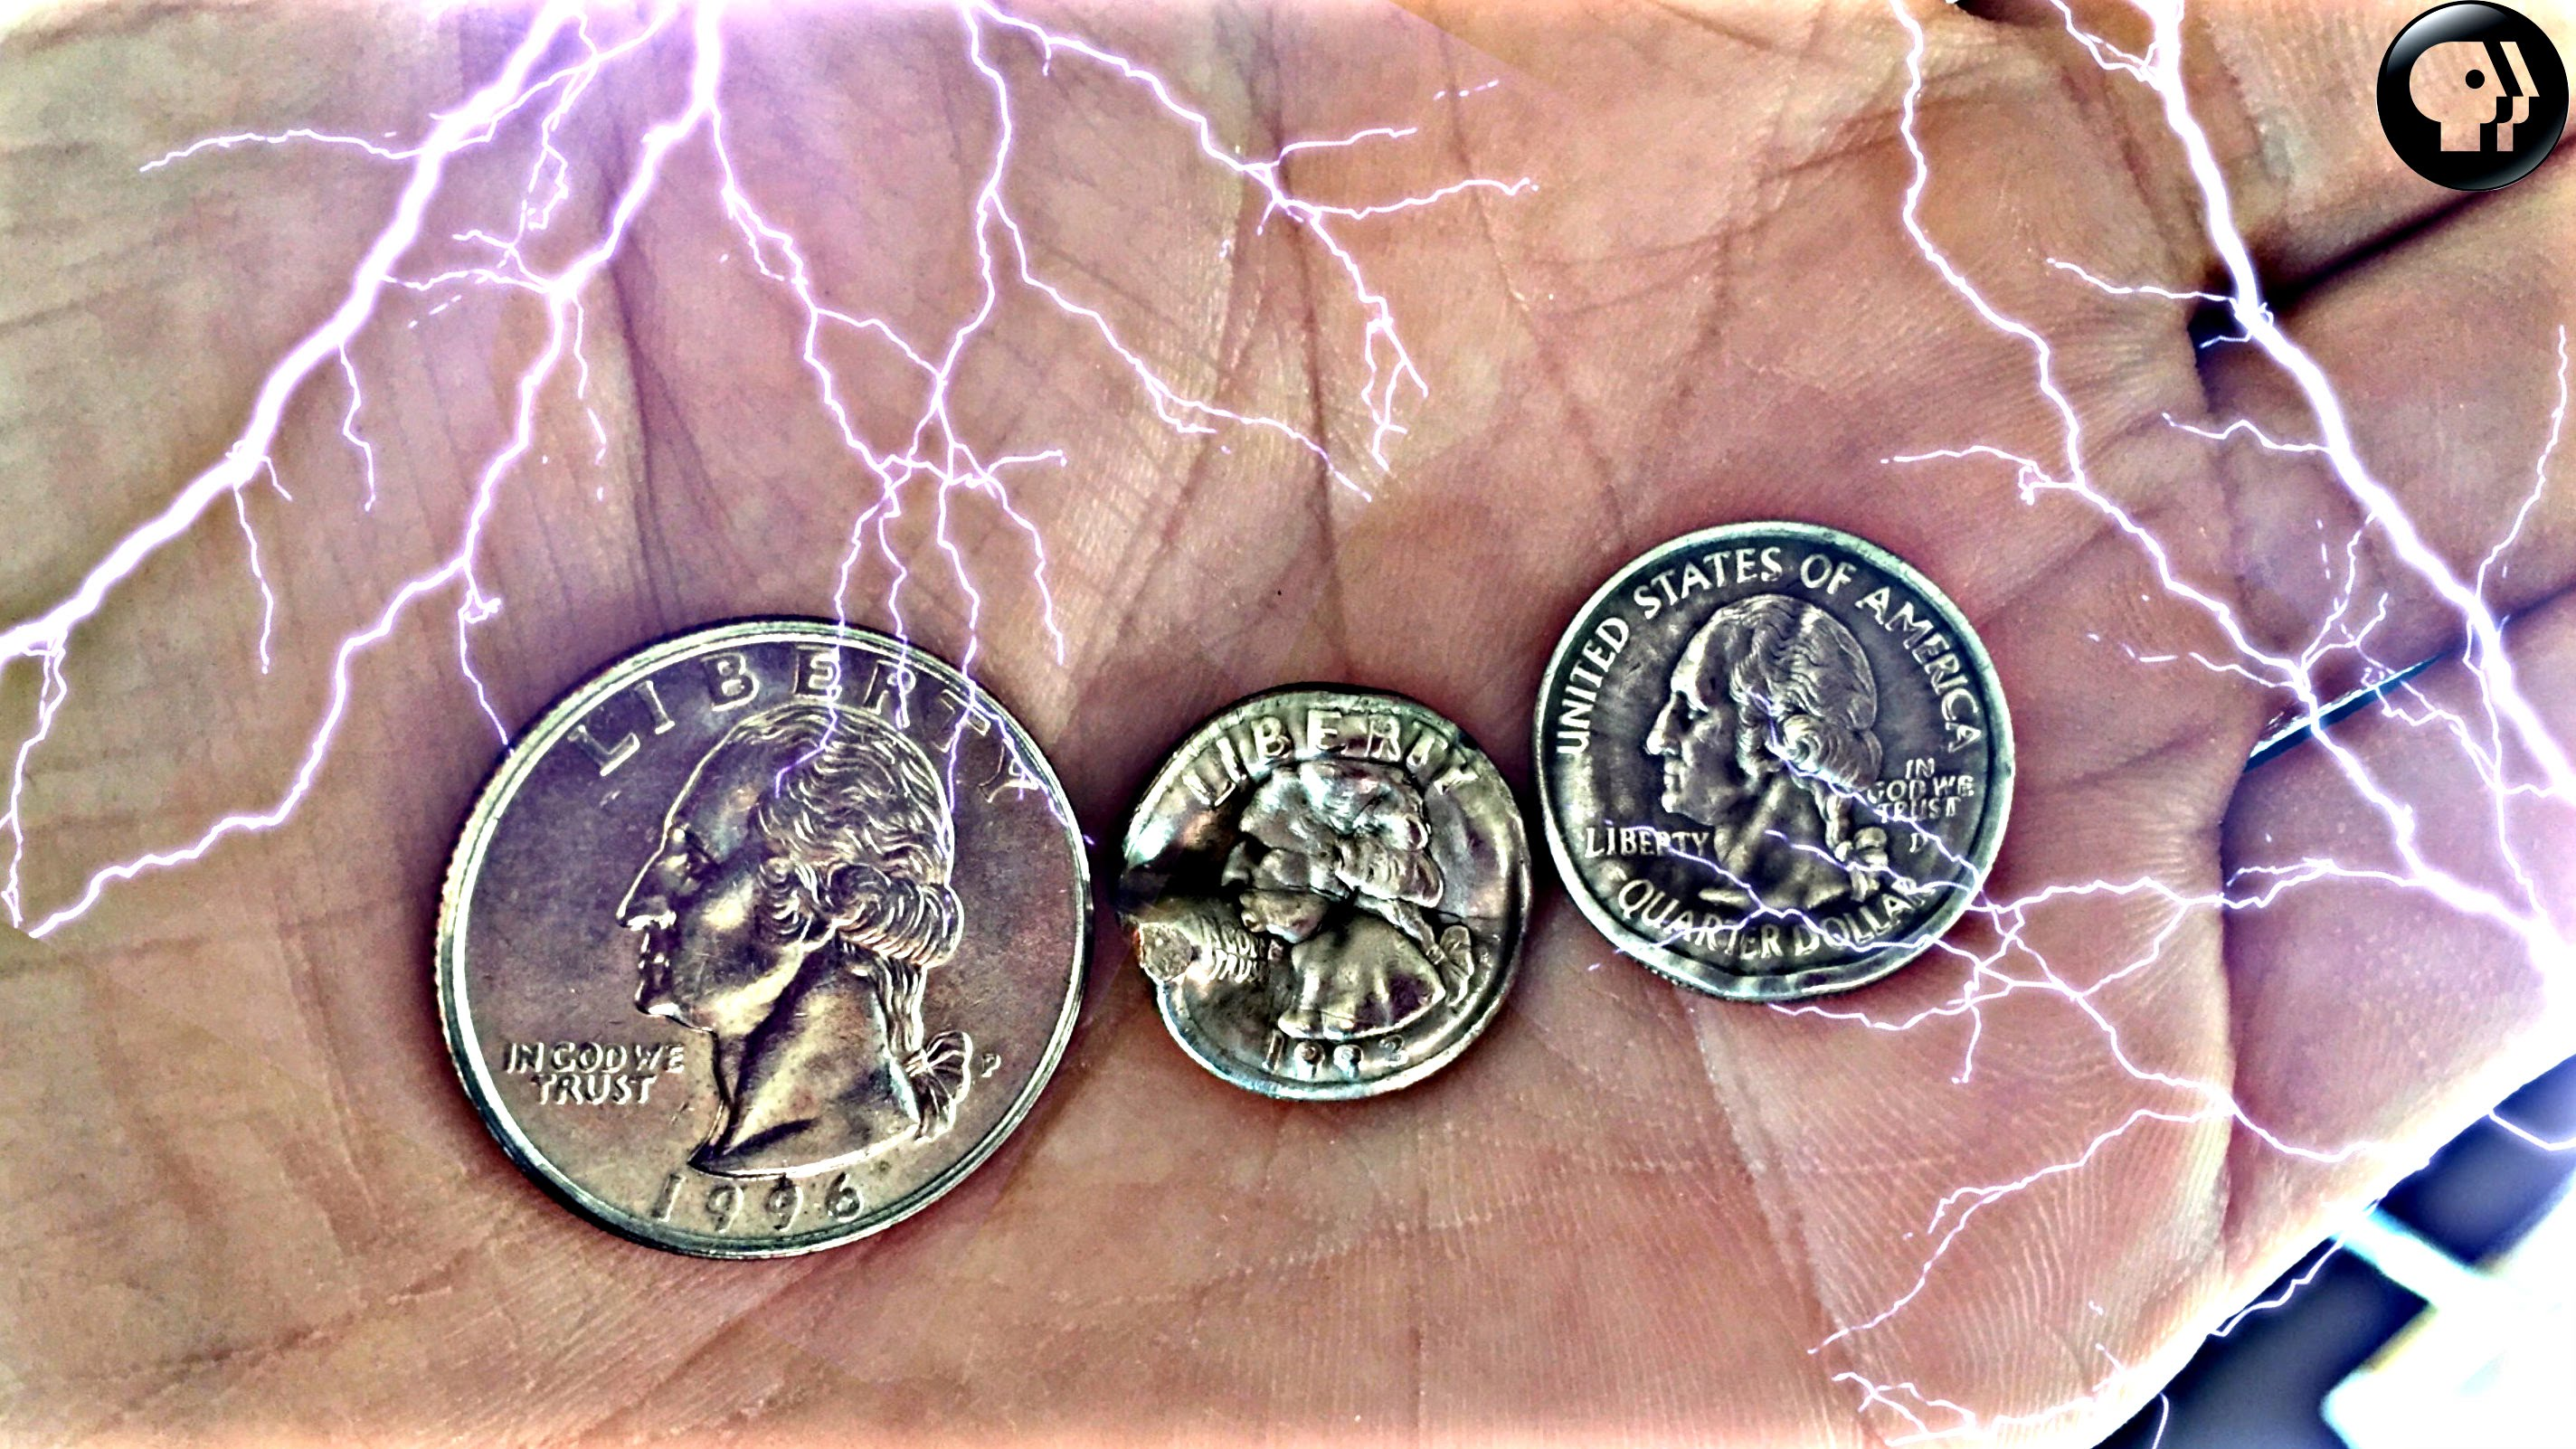 How To Shrink A Quarter With A High Voltage Electromagnet_Image 1